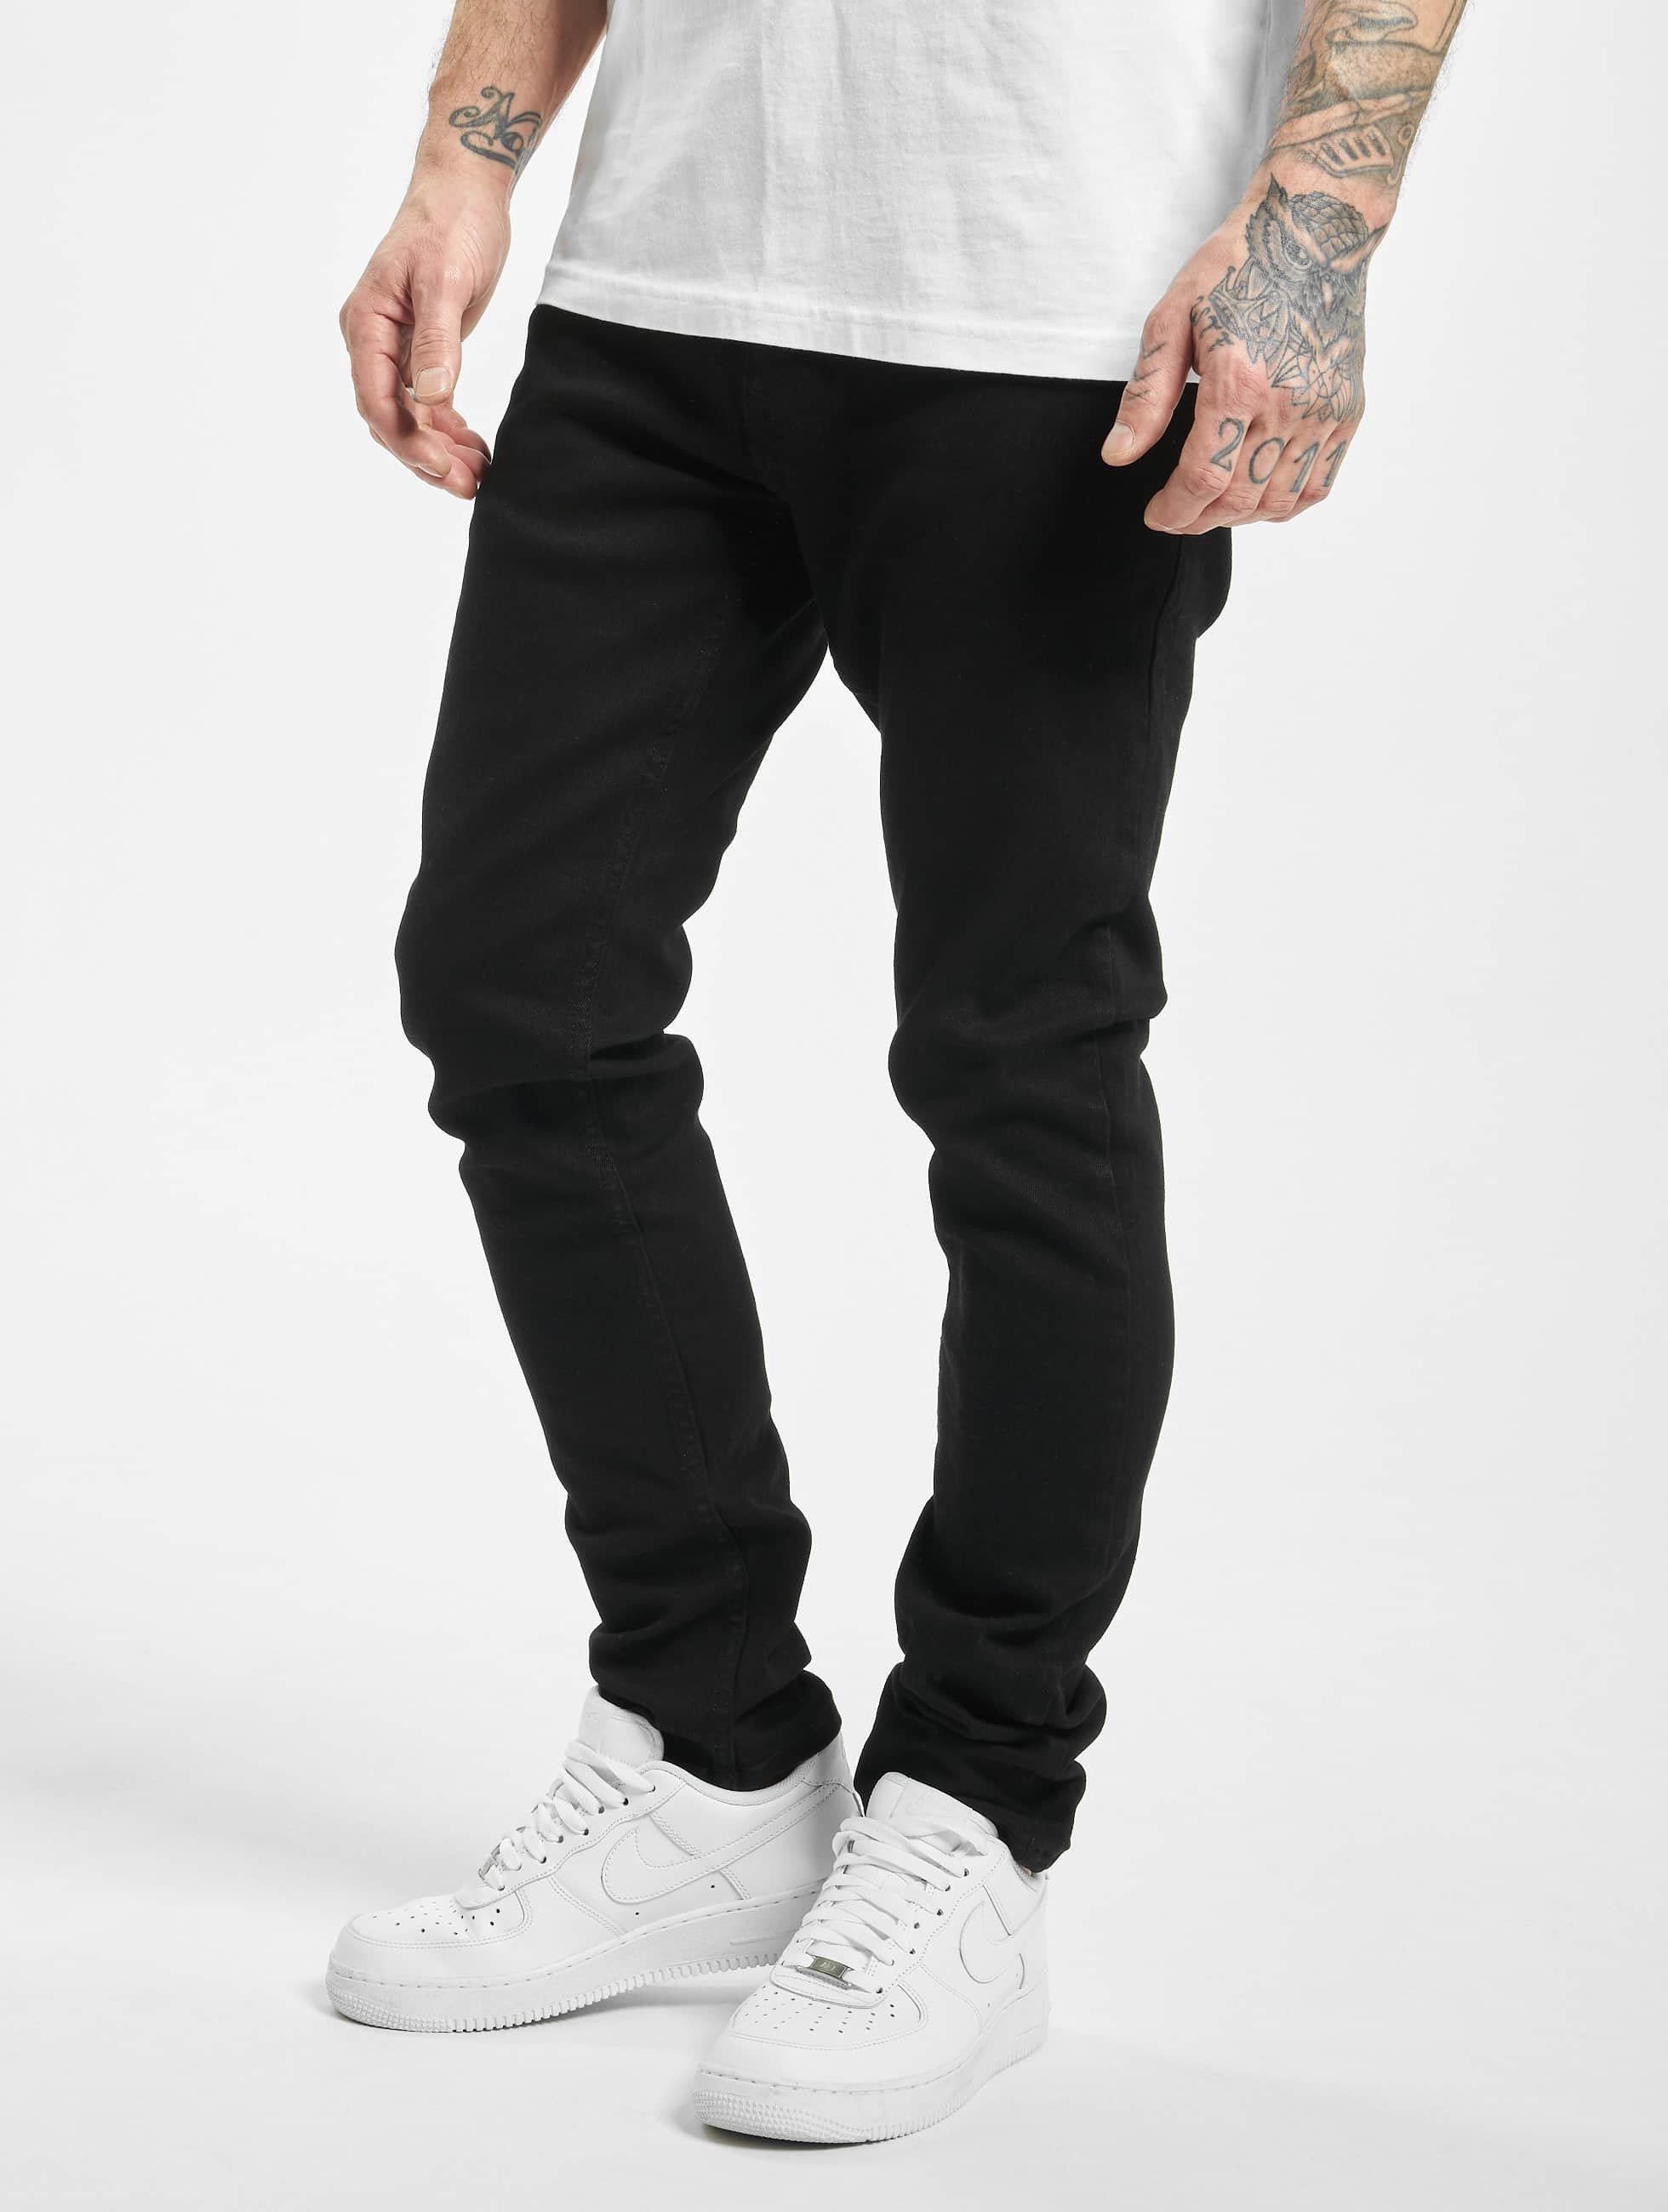 2Y / Slim Fit Jeans Colin in black W 34